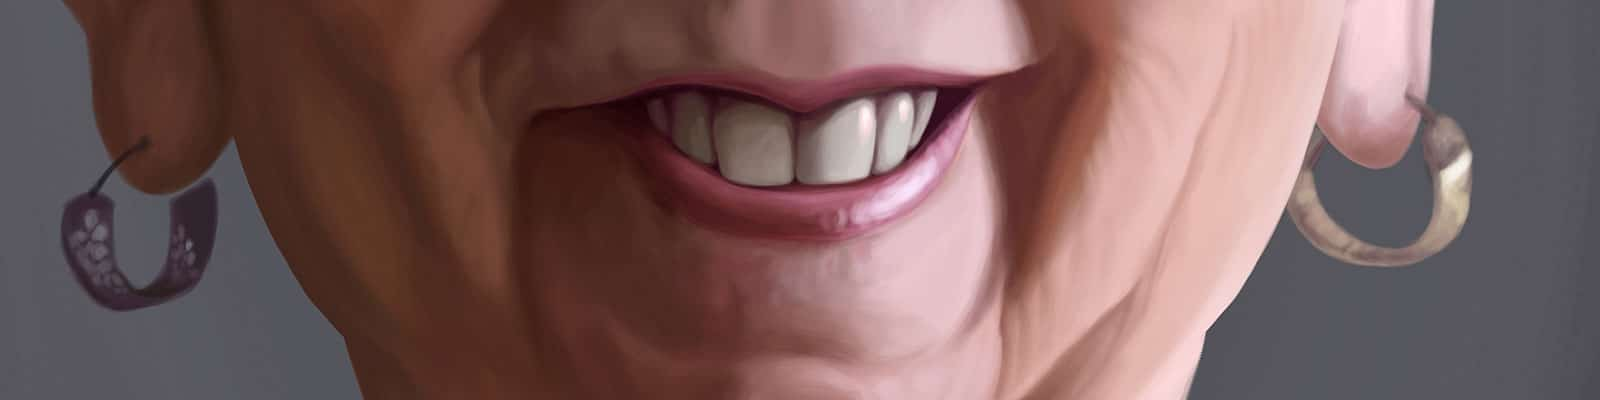 Mouth Detail